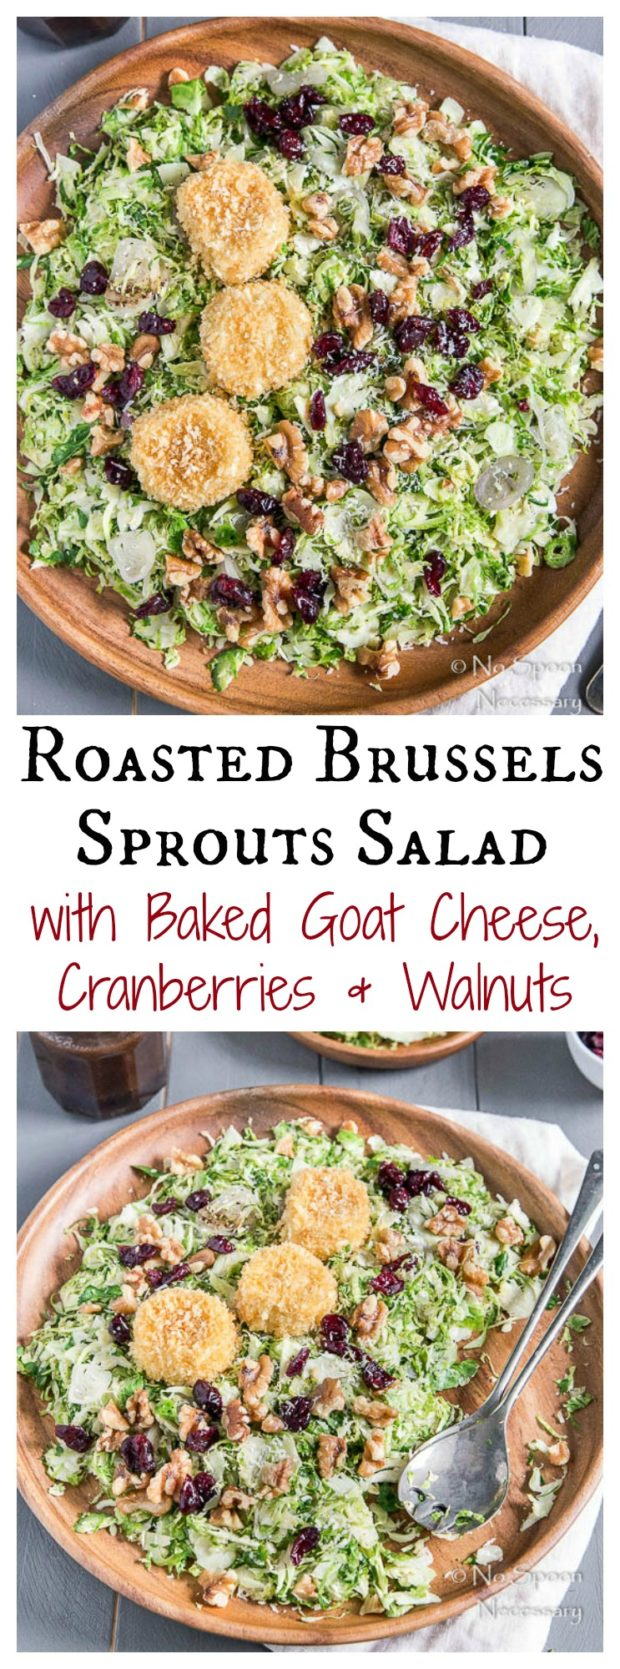 Roasted Brussels Sprouts Salad with Goat Cheese, Cranberries & Walnuts1